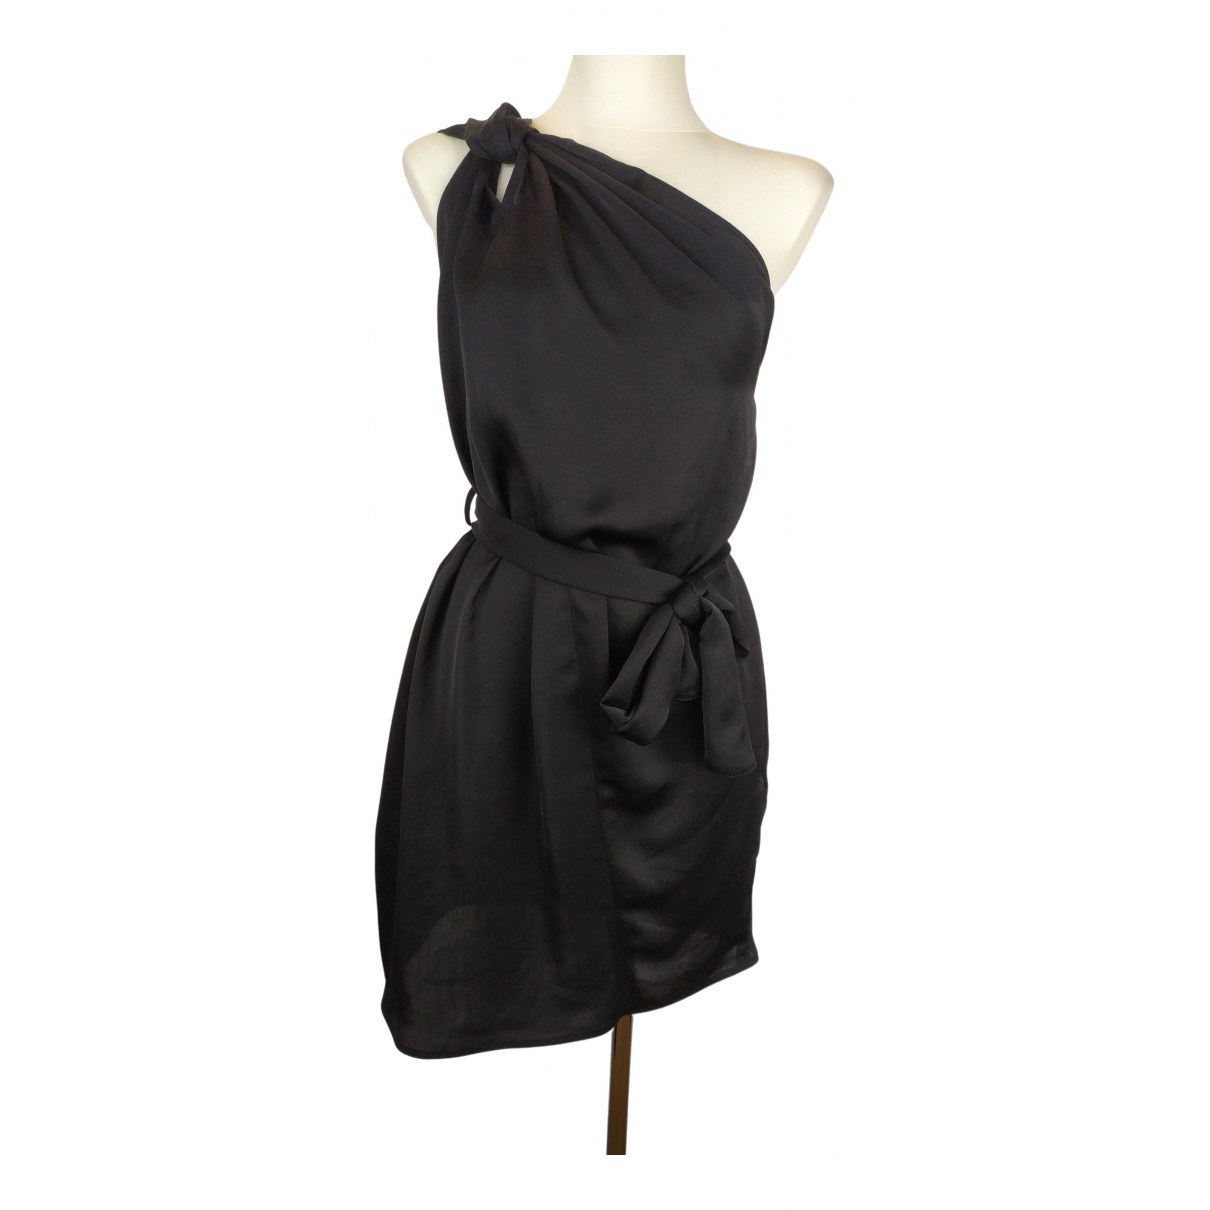 Acne Studios N Black dress for Women 36 FR